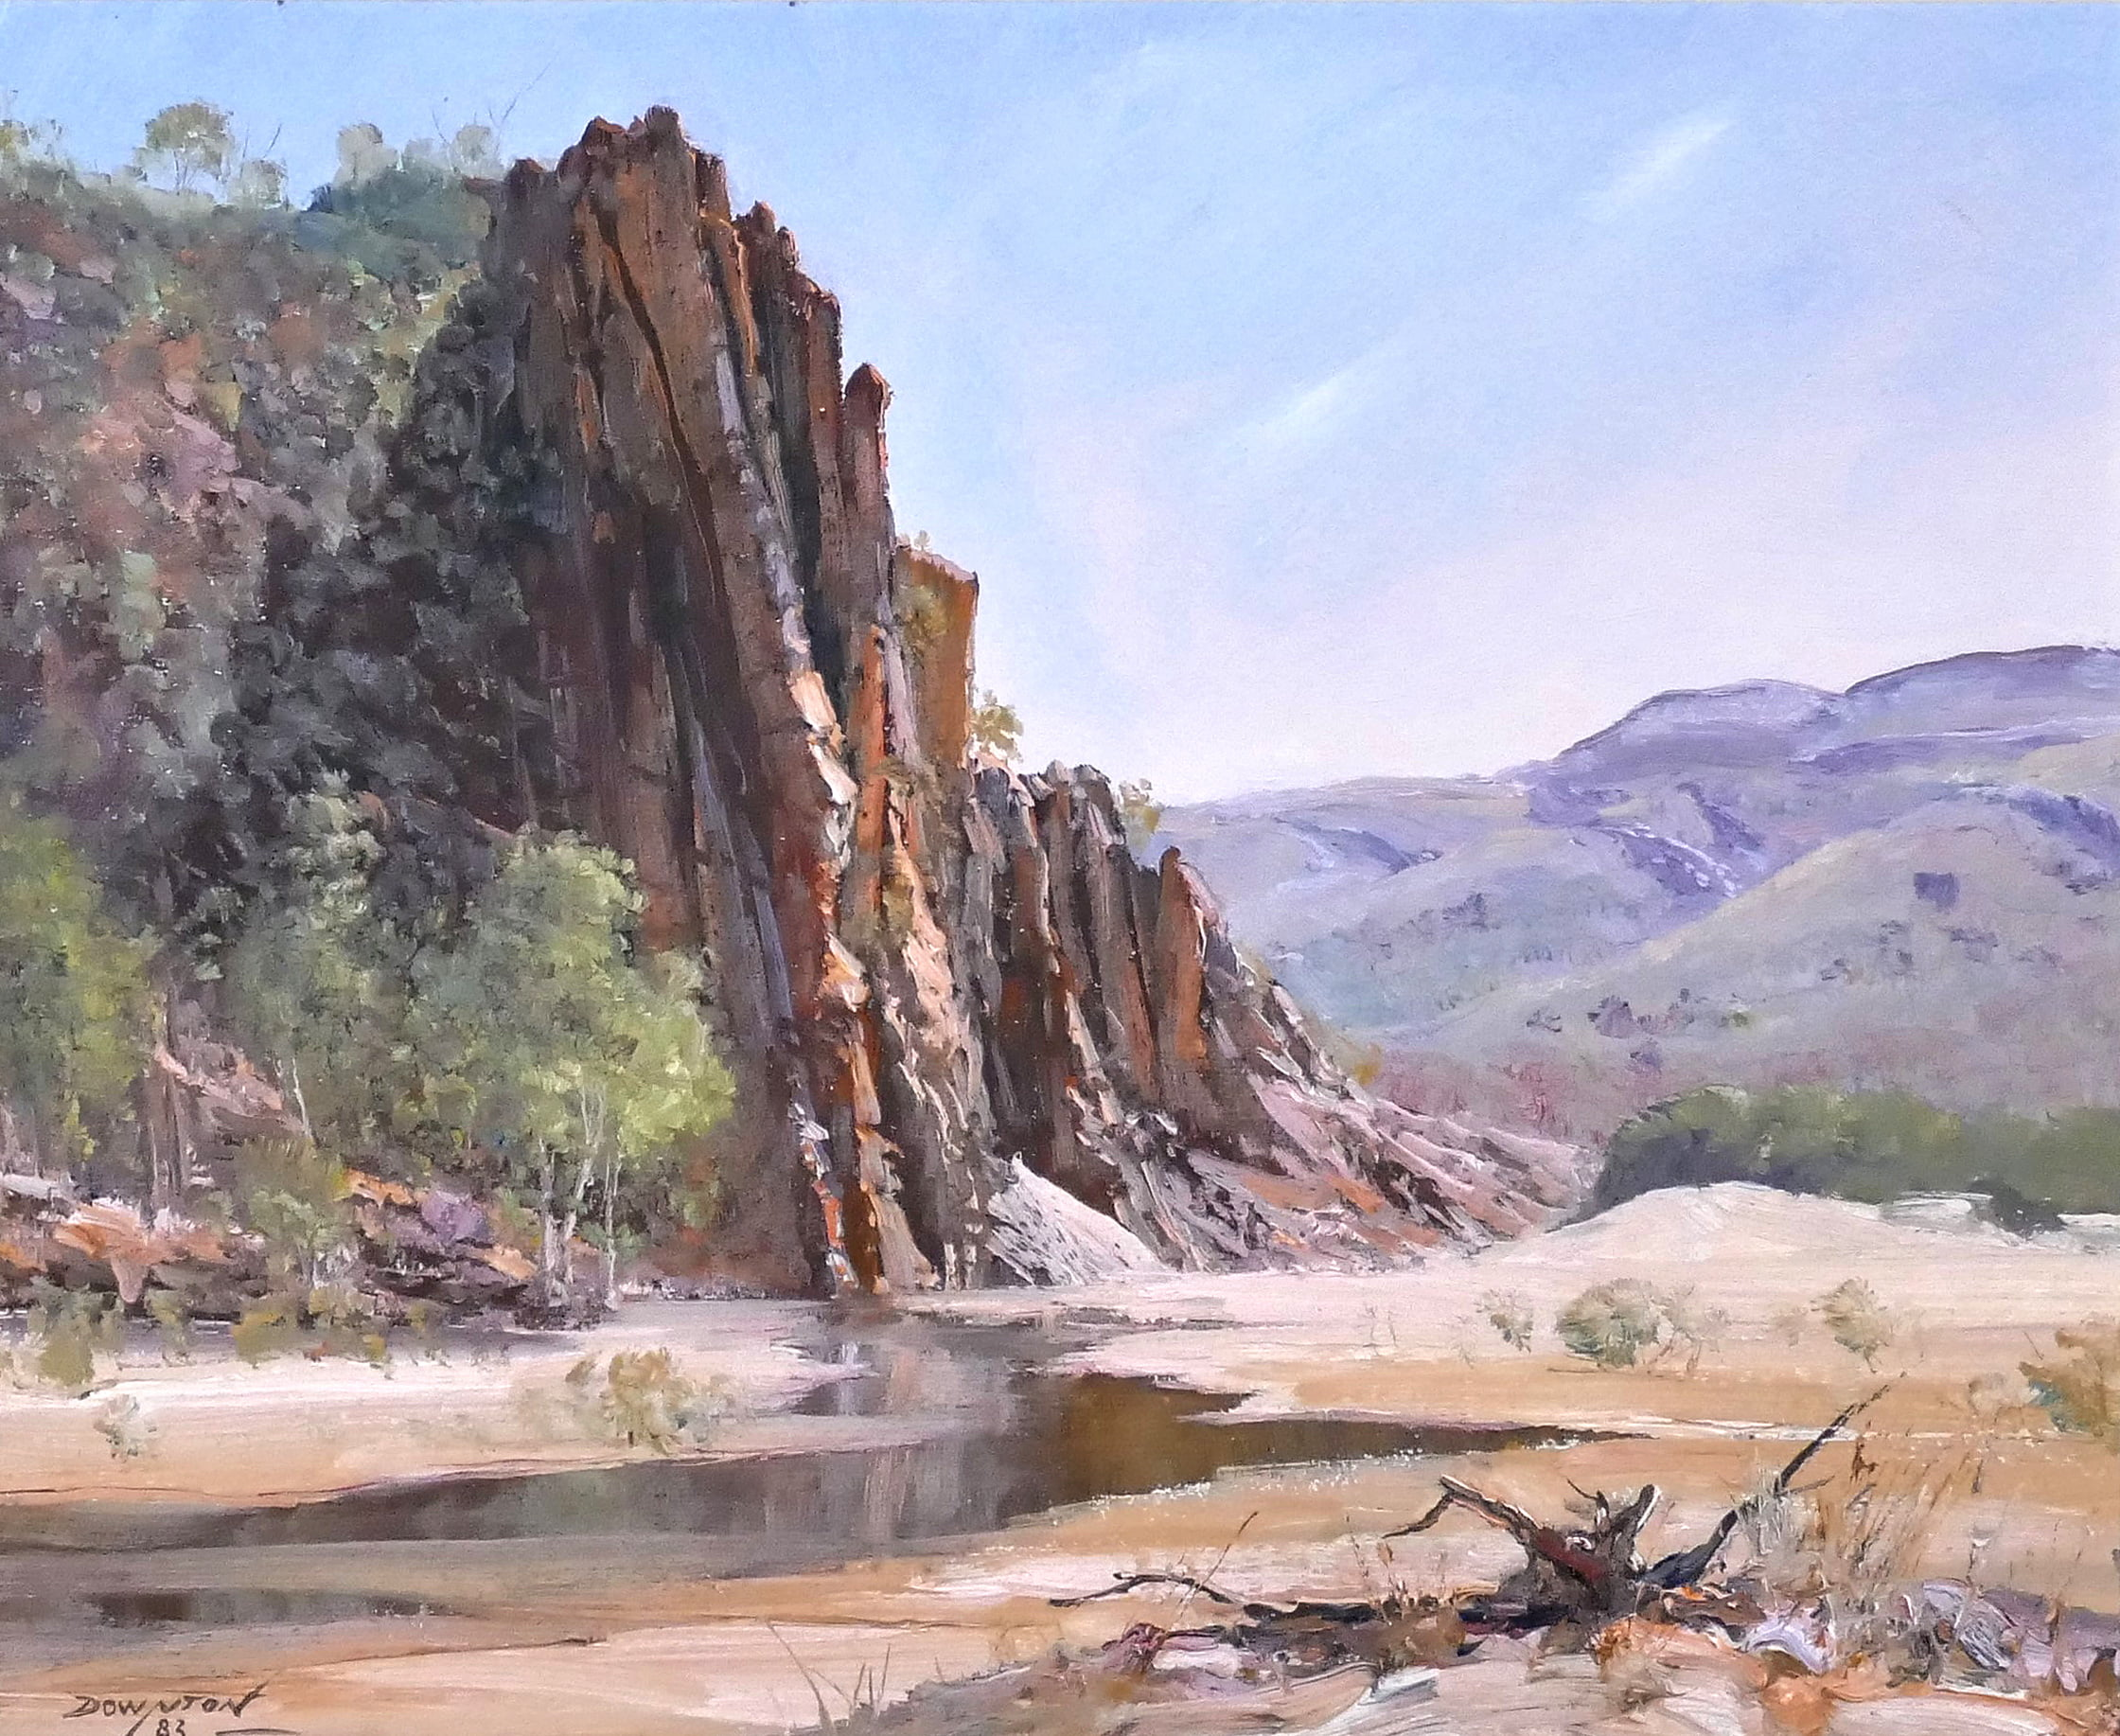 06. Finke River Organ Pipes